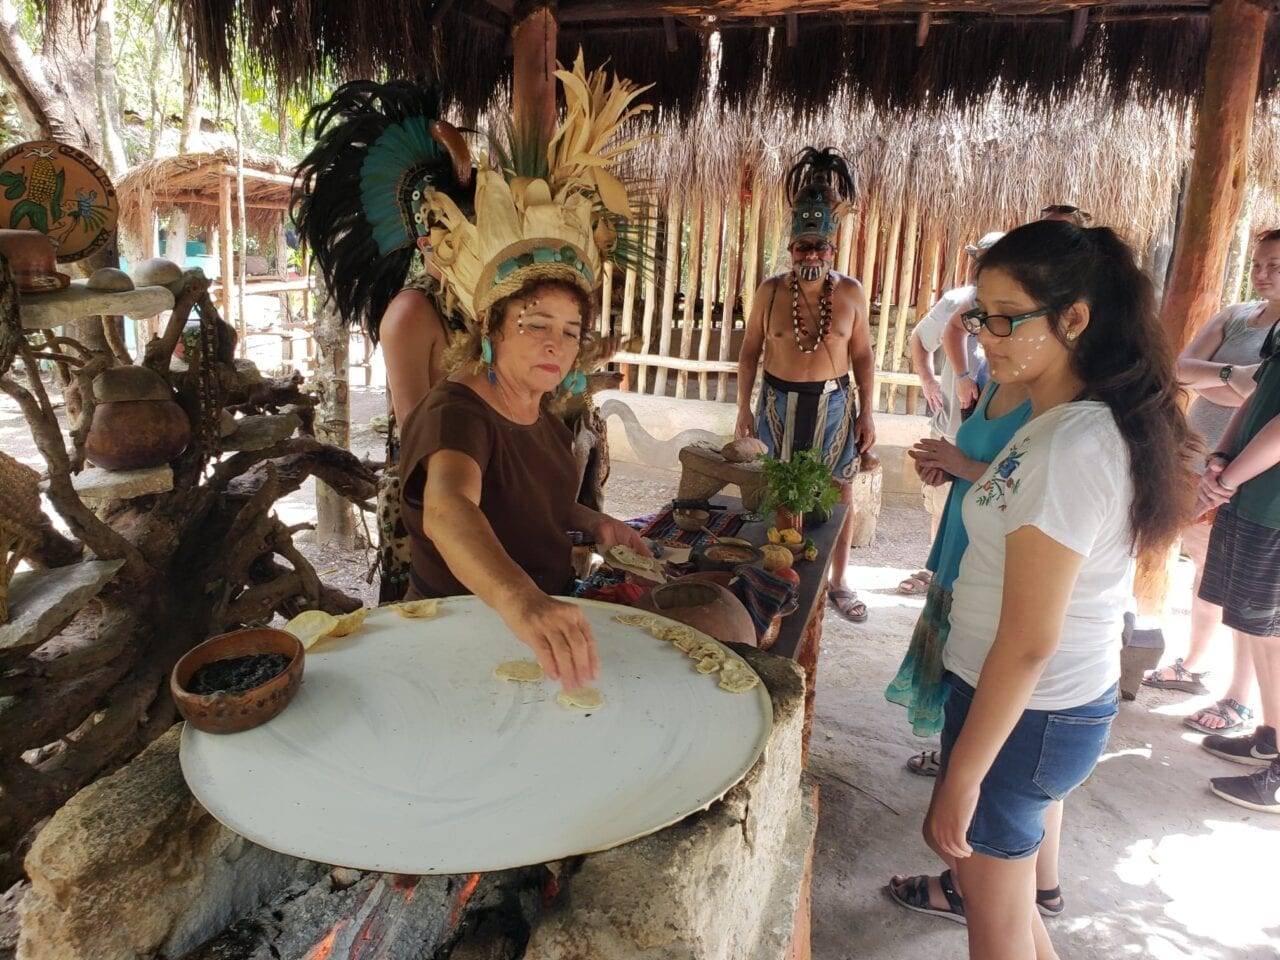 Cozumel Cultural Jeep Tour with Mayan Village and Mexican Lunch